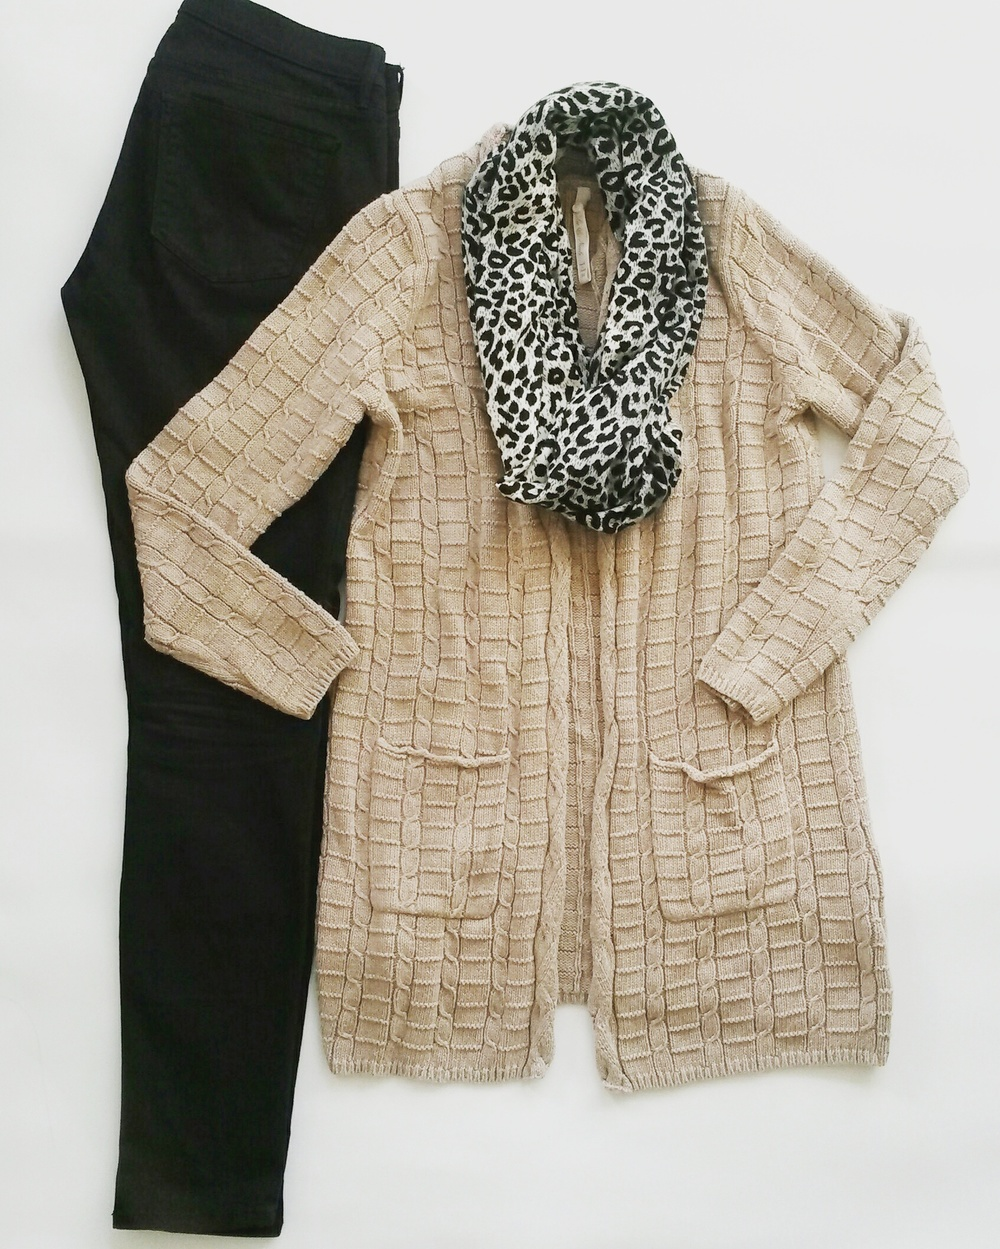 Tan cardigan, leopard print scarf, thrifted; Gap black skinny jeans